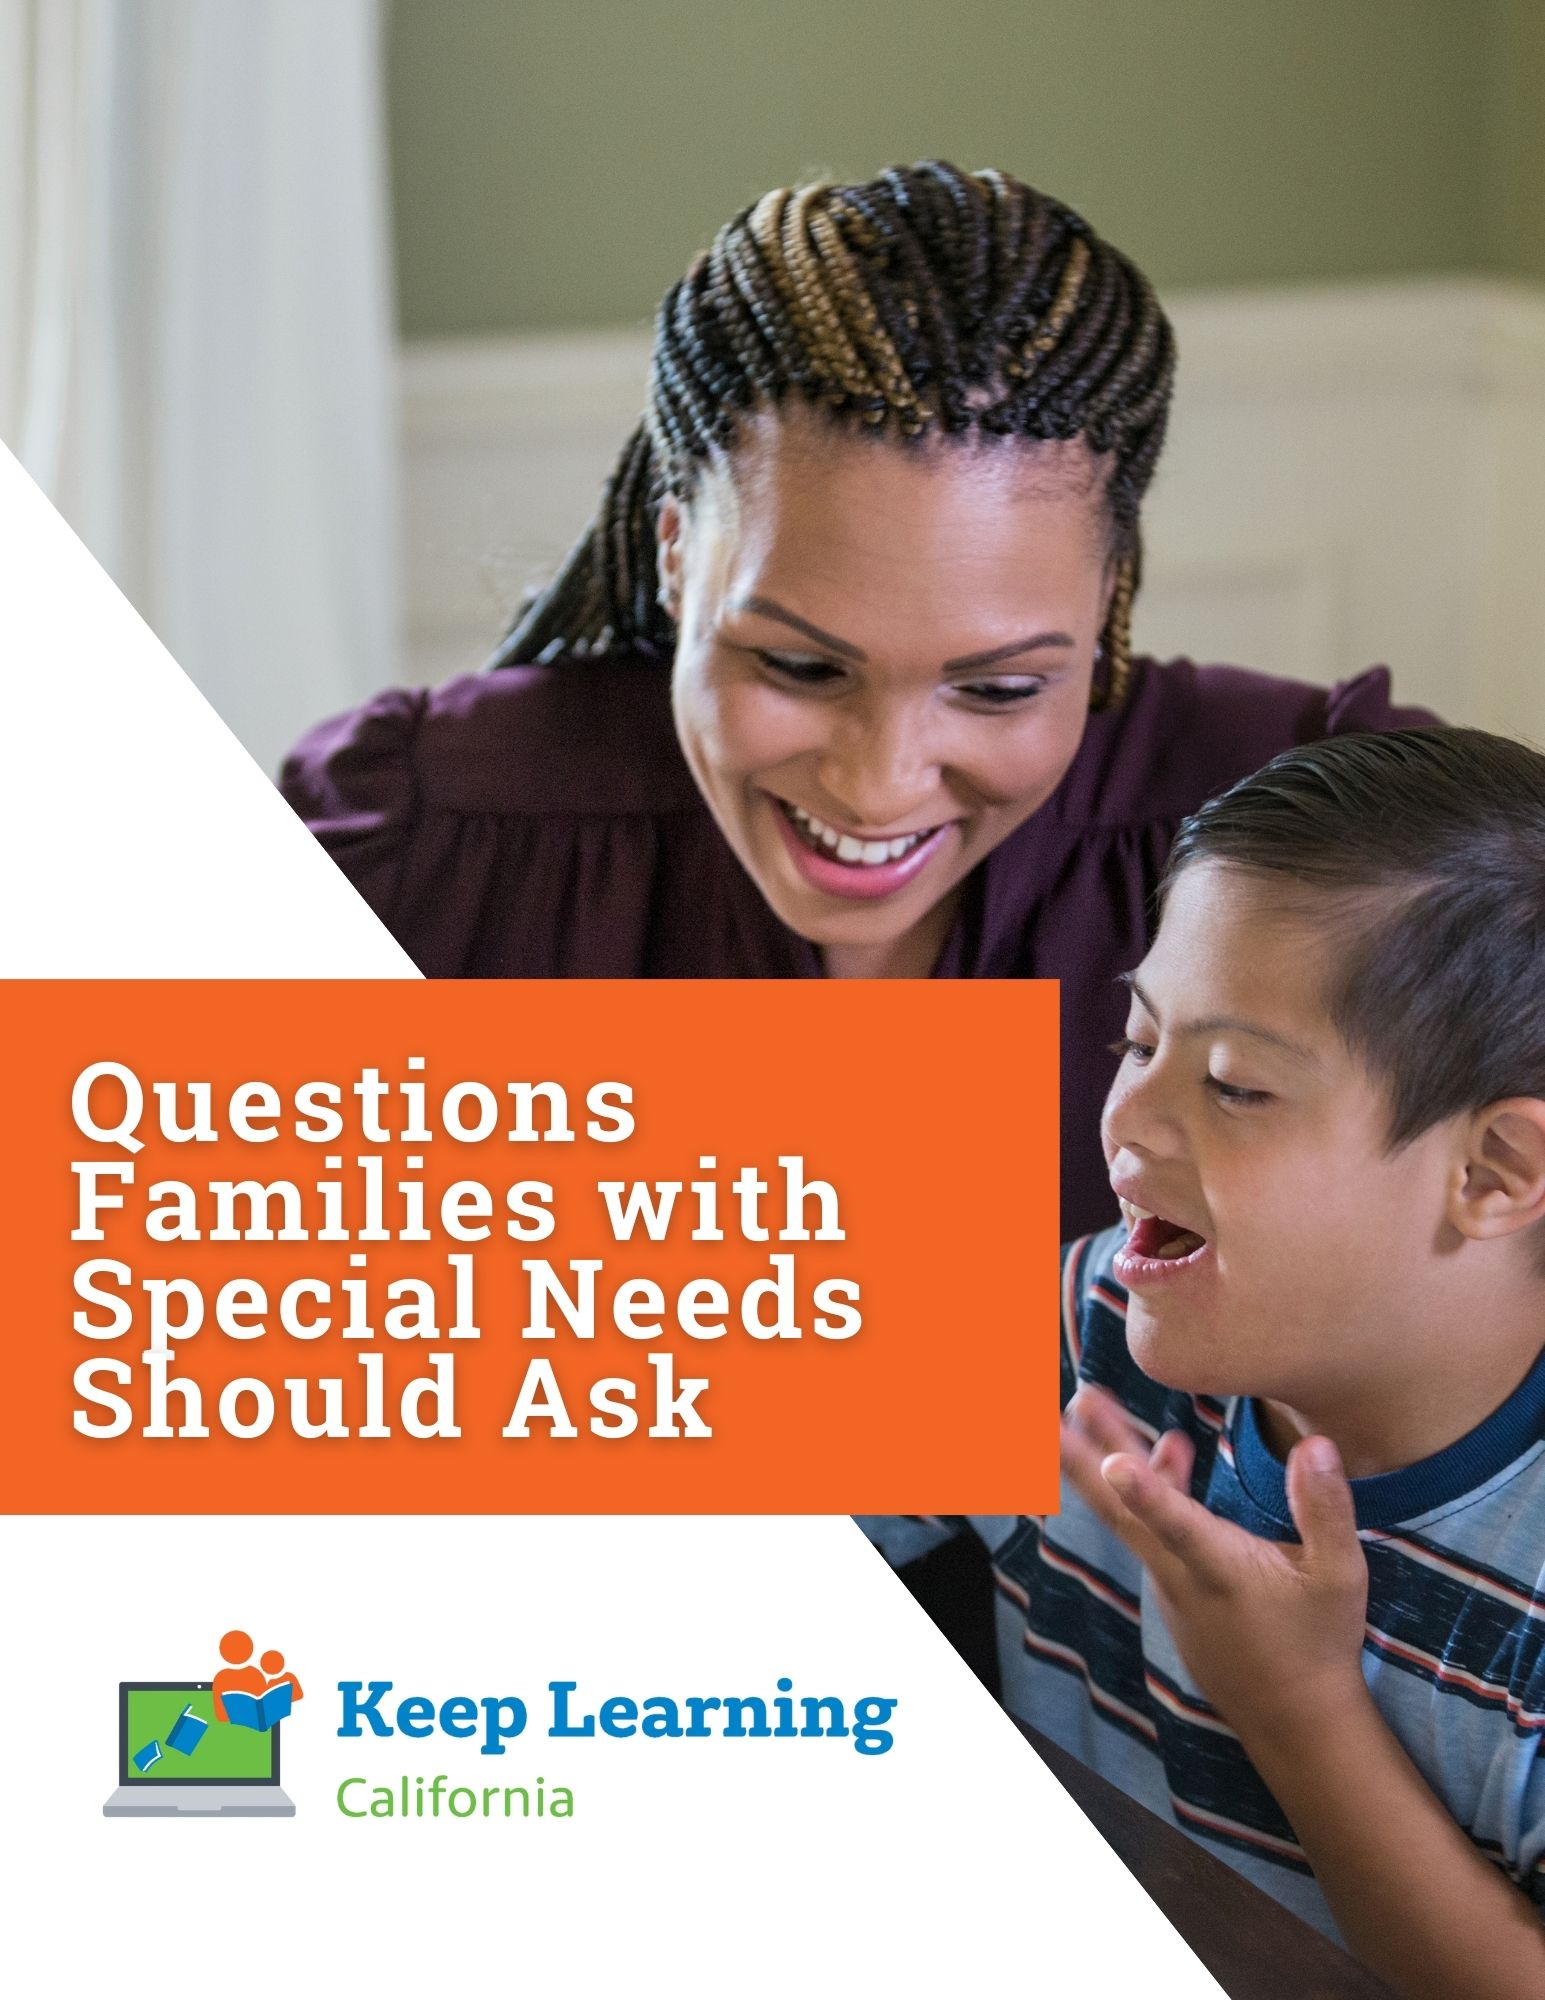 PDF – Questions Families with Special Needs Should Ask